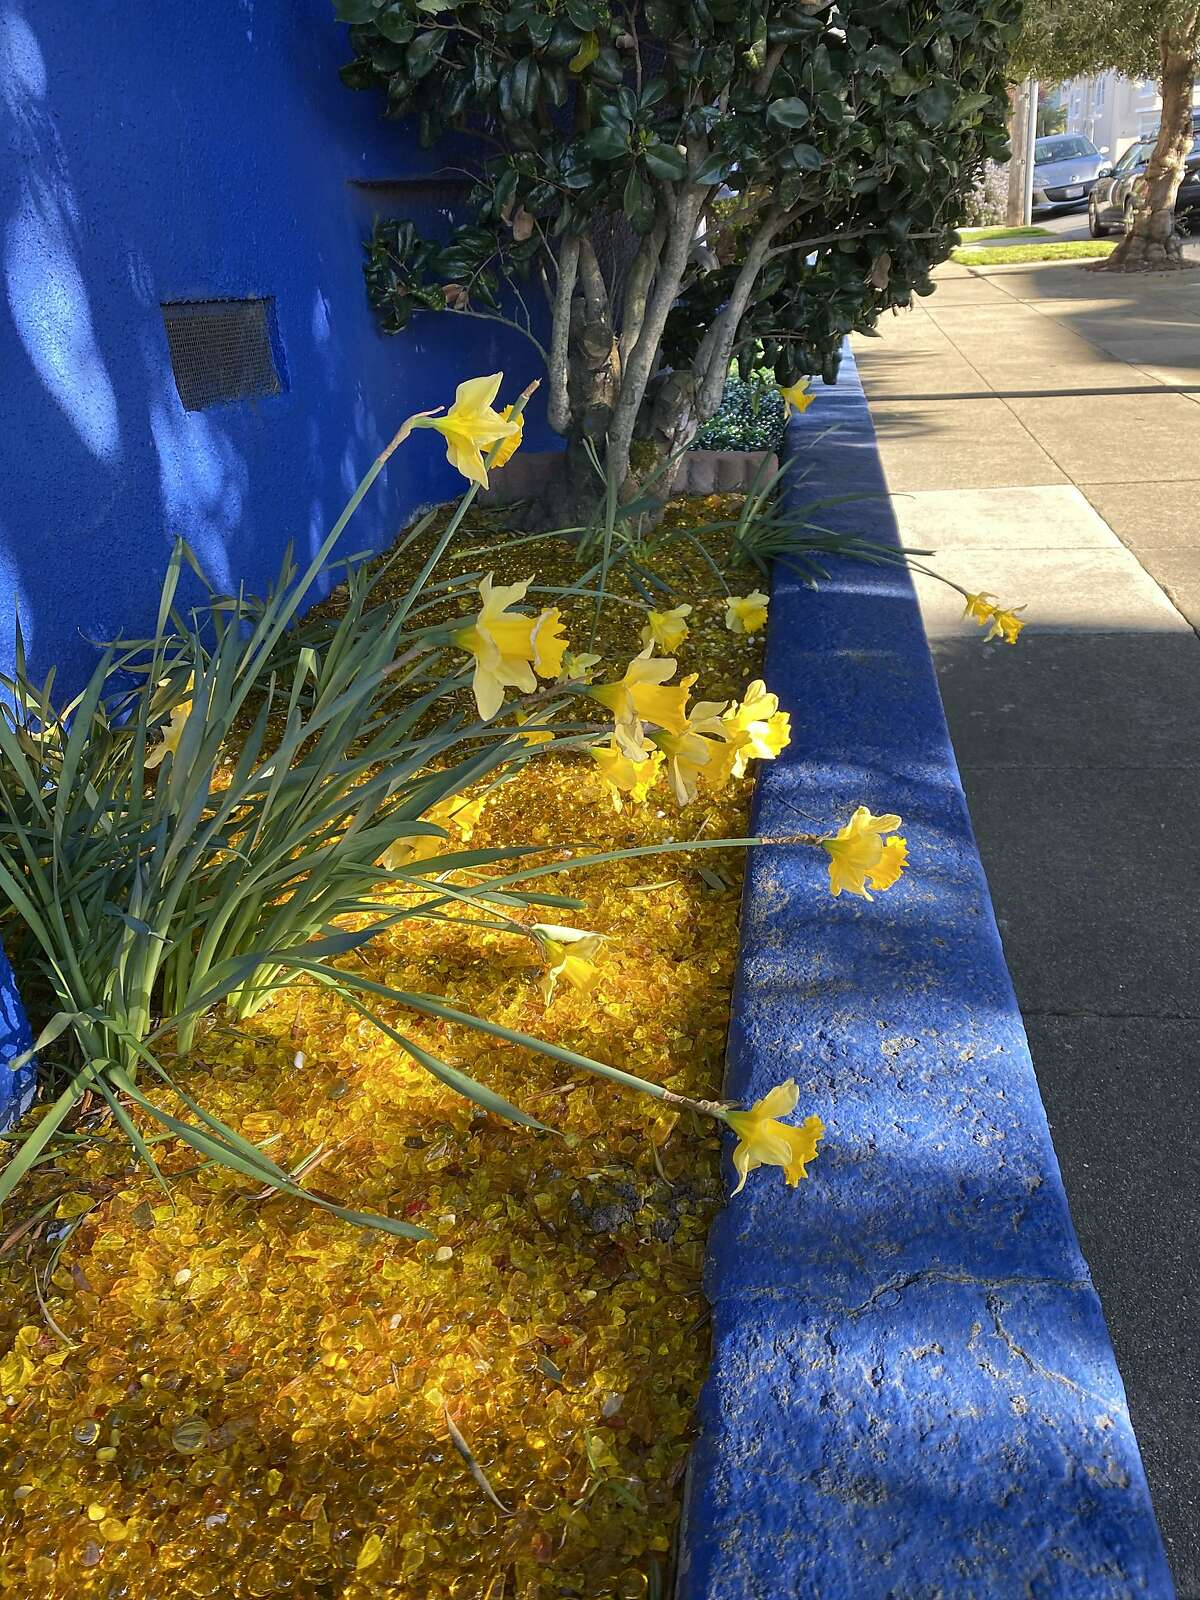 Mystery daffodils growing outside the Bedlam Blue Bungalow as spring starts to bloom in late February 2021.